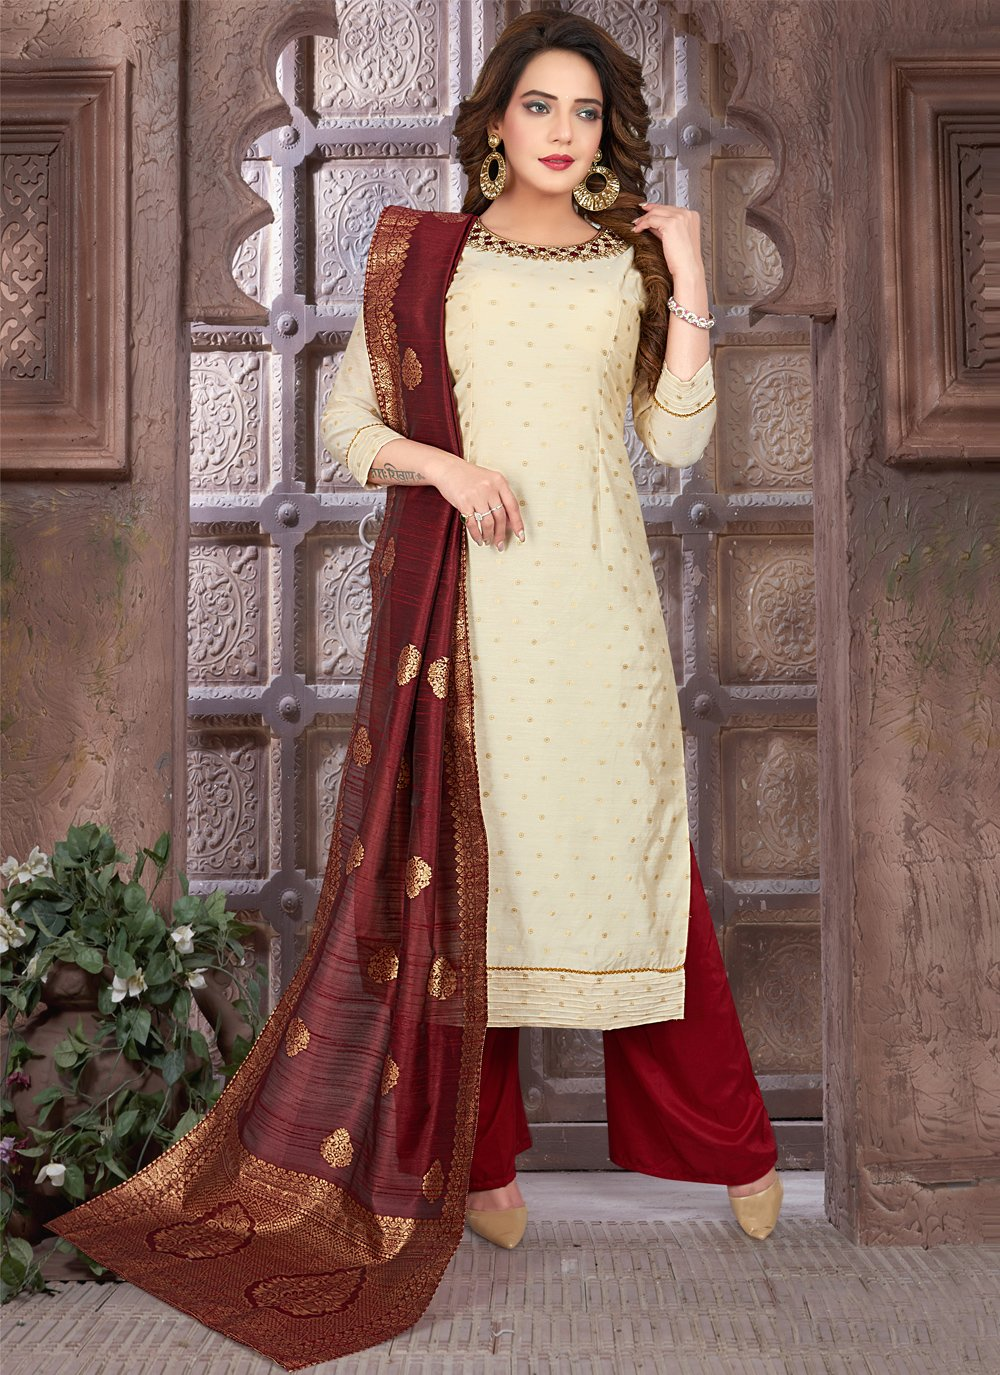 Art Silk Embroidered Cream and Maroon Readymade Suit